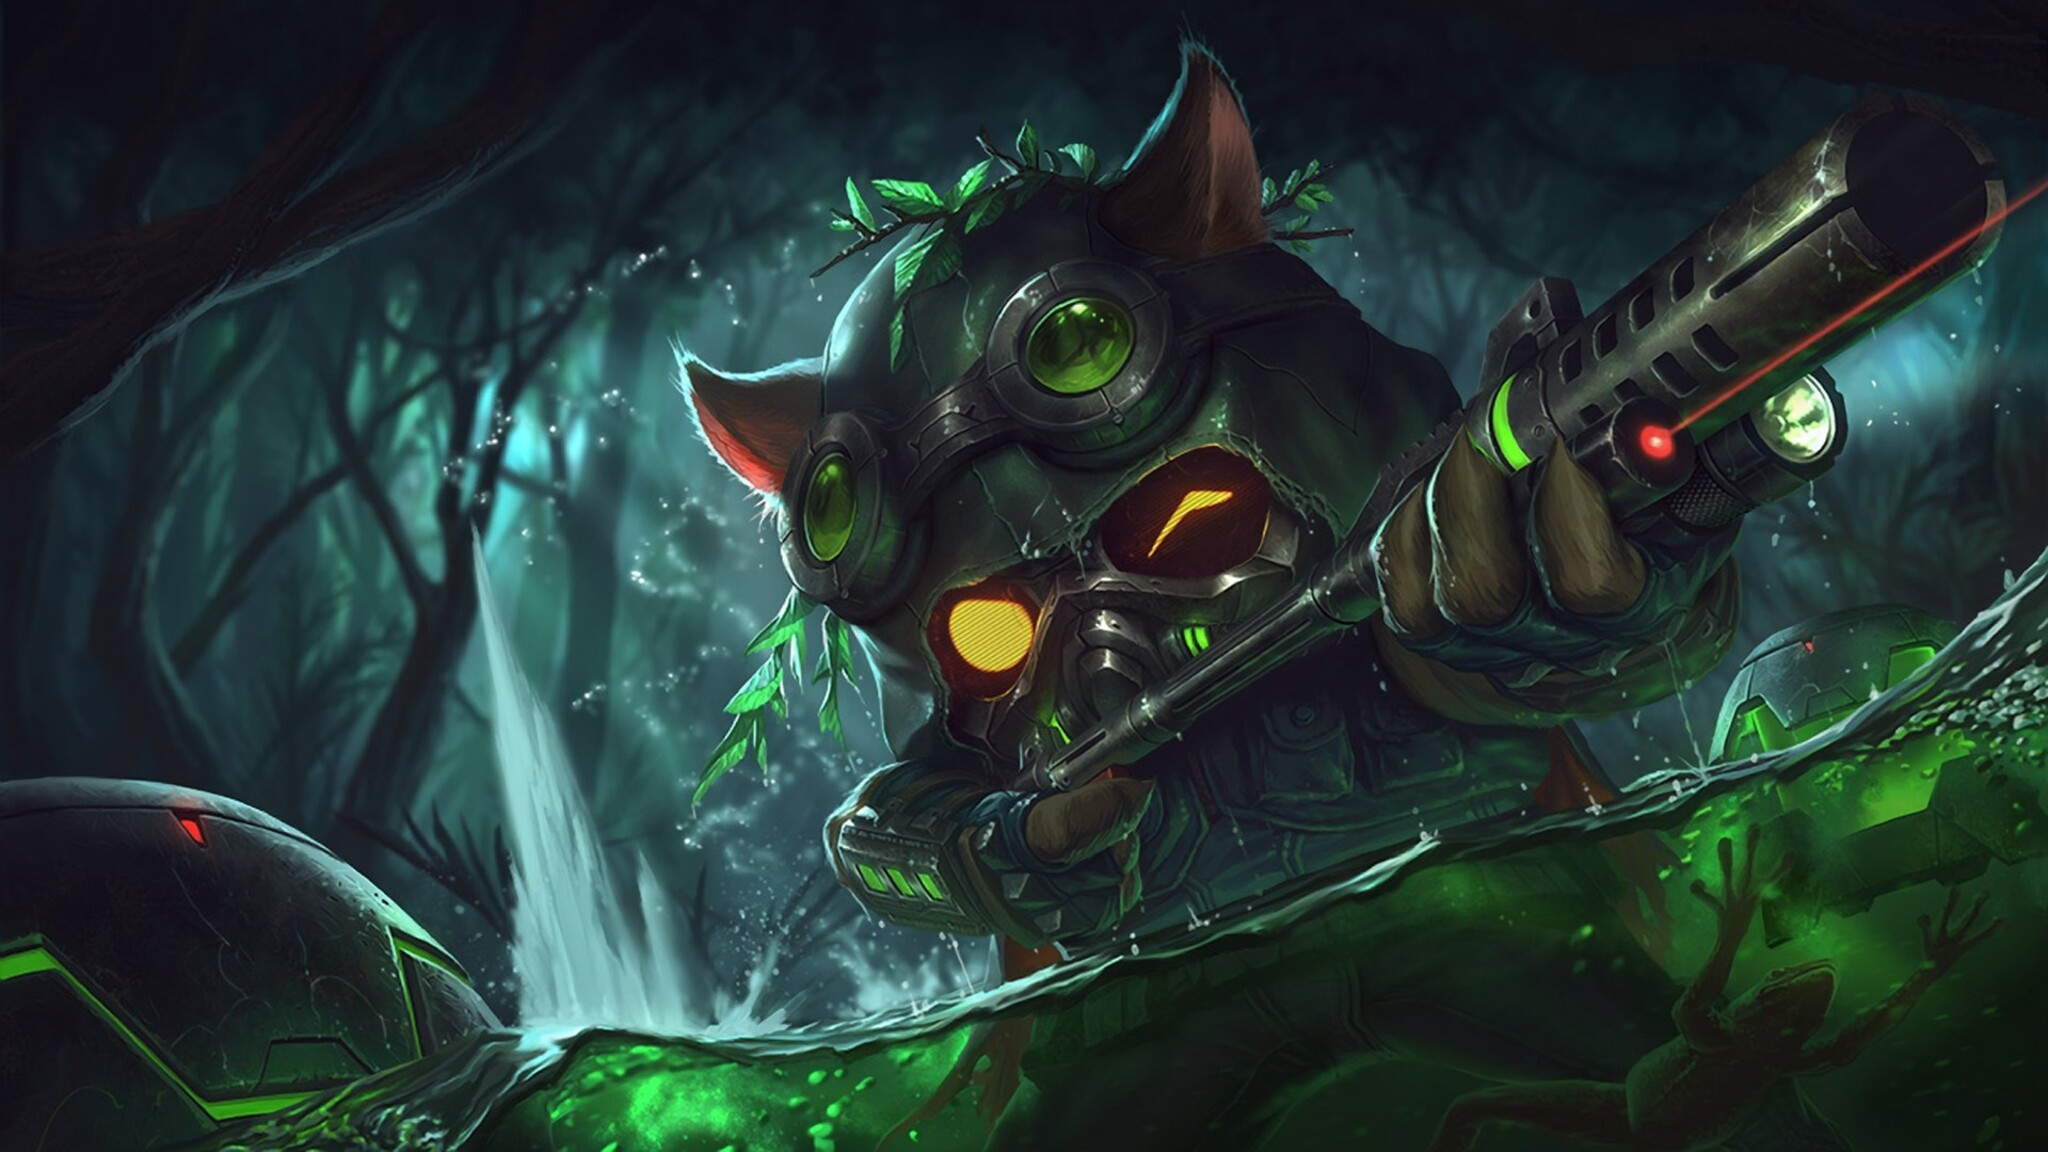 2048x1152 Teemo League Of Legends 2048x1152 Resolution HD ...